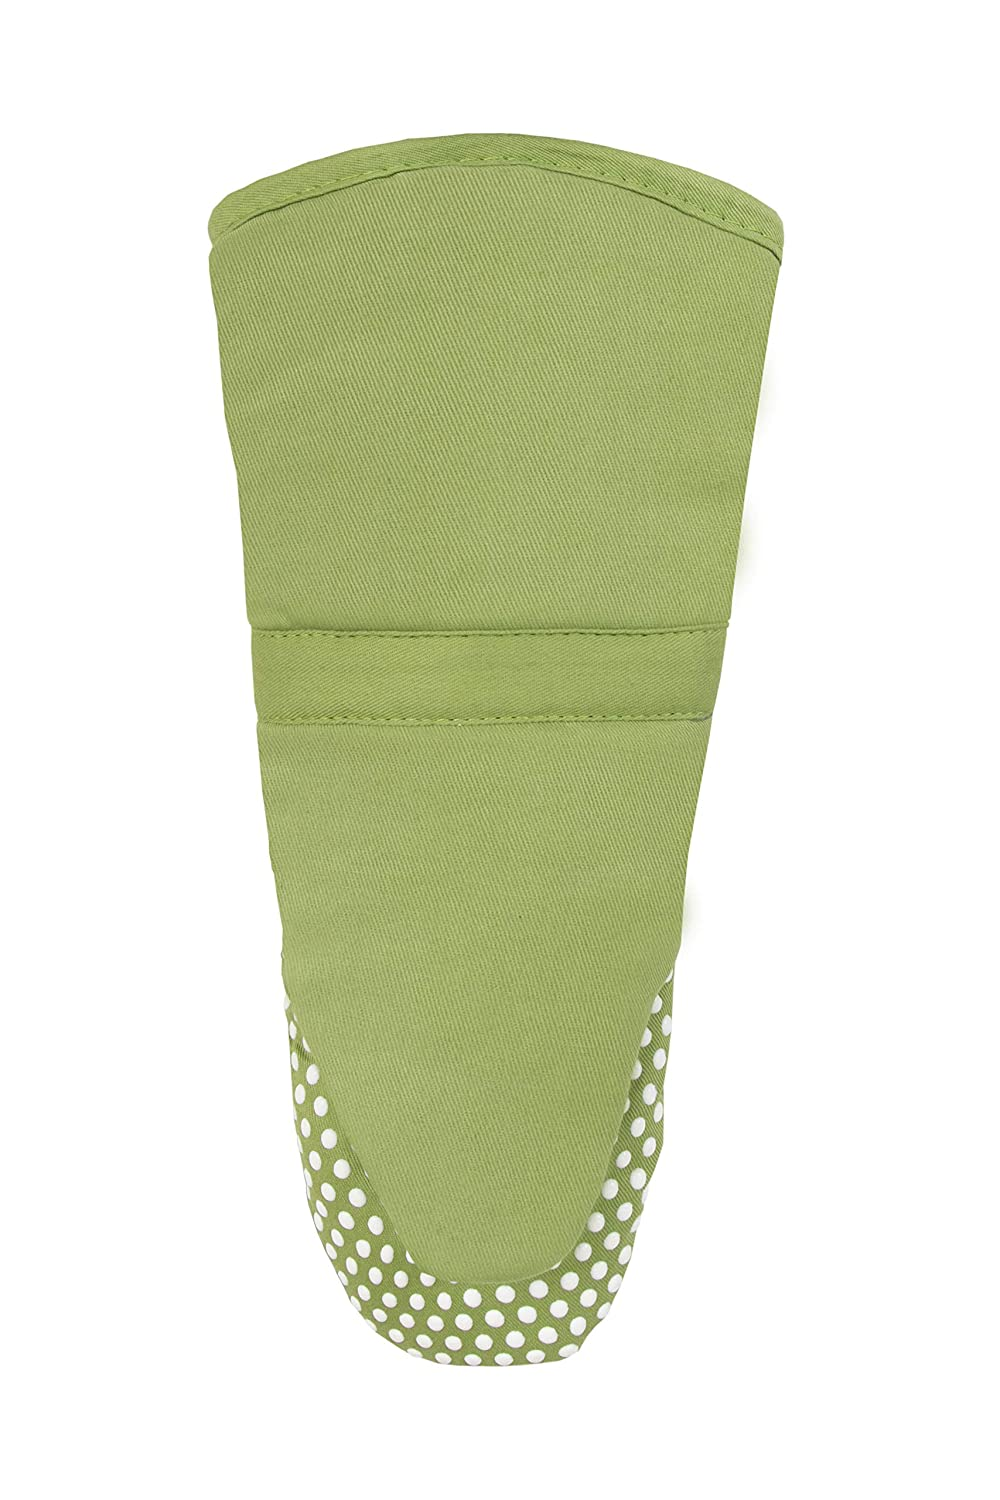 RITZ Royale Cotton Twill Puppet Oven Mitt with Silicone Dot Non-Slip Grip, 13-inch, Cactus Green